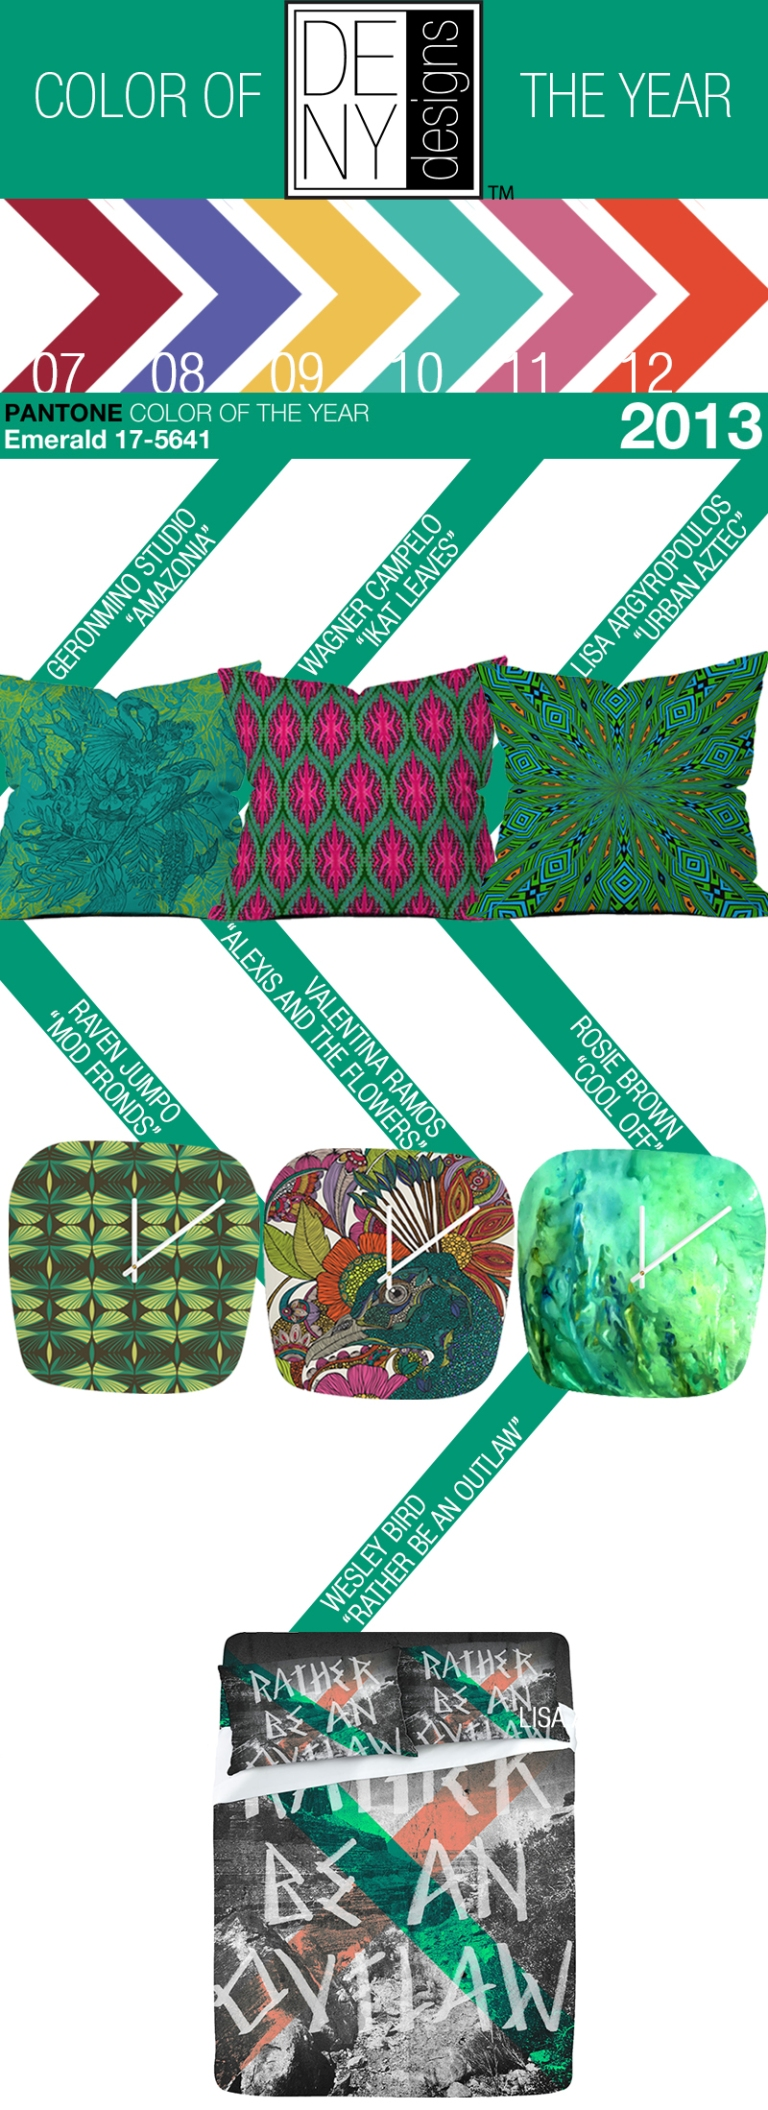 @DENYdesigns artists use Emerald Color of the Year for the home